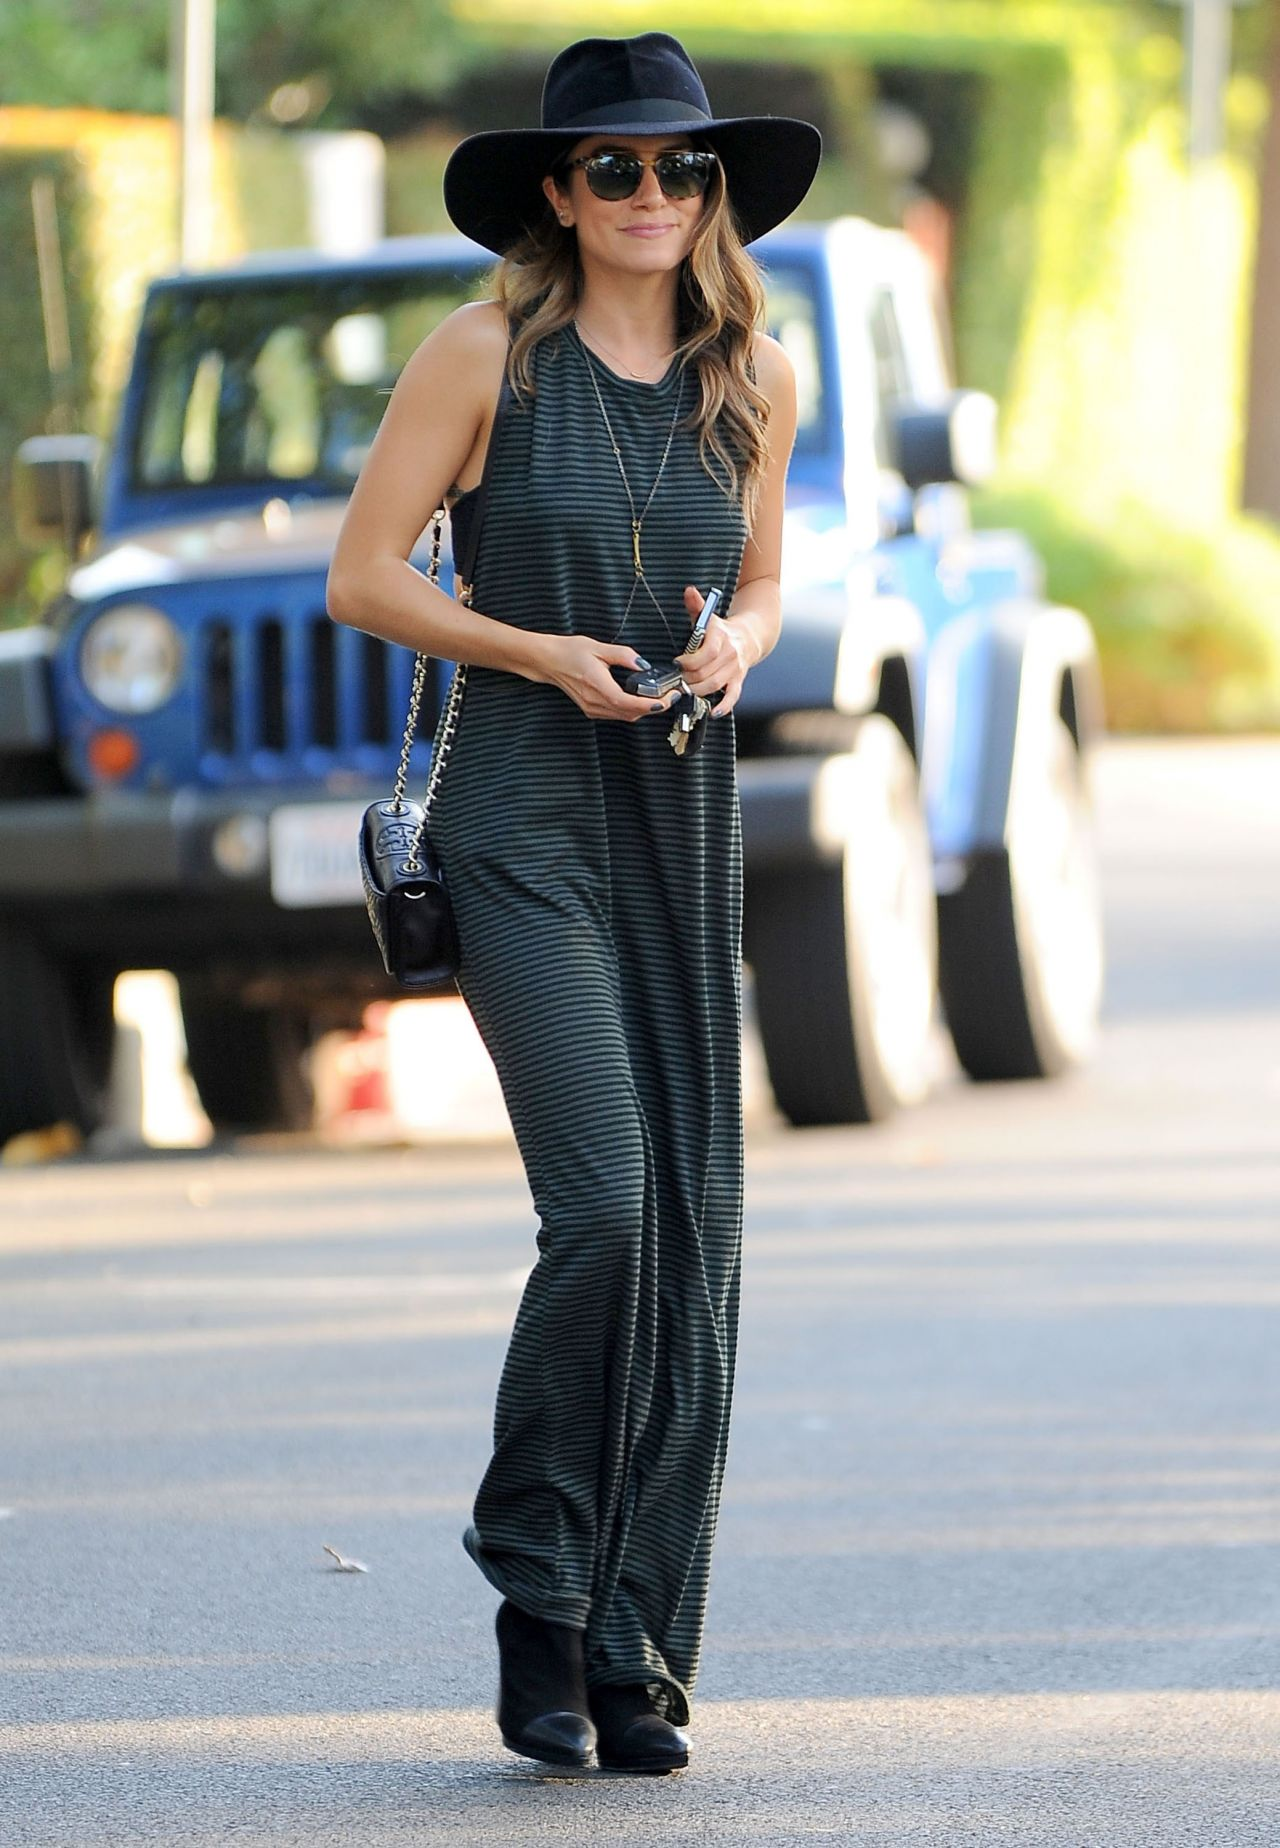 Nikki Reed Street Fashion Out In Los Angeles November 2014